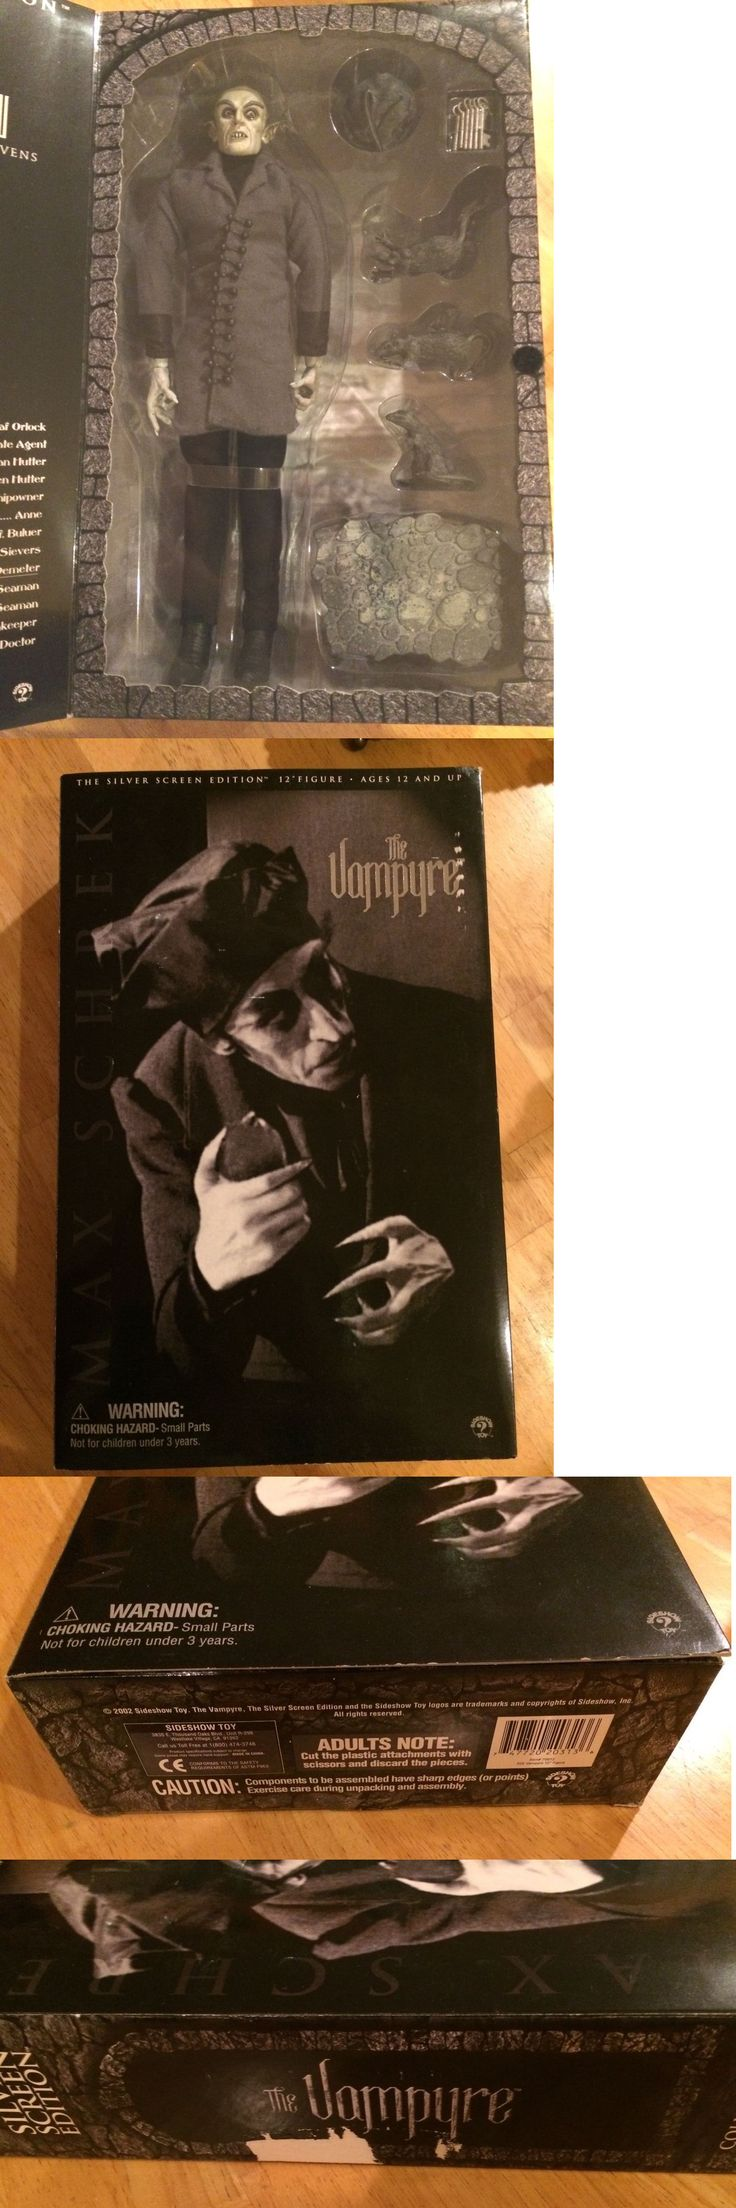 Dracula 19194: 2002 Sideshow Toy The Vampyre Vampire Silver Screen Edition Nosferatu Horror Fig -> BUY IT NOW ONLY: $165 on eBay!